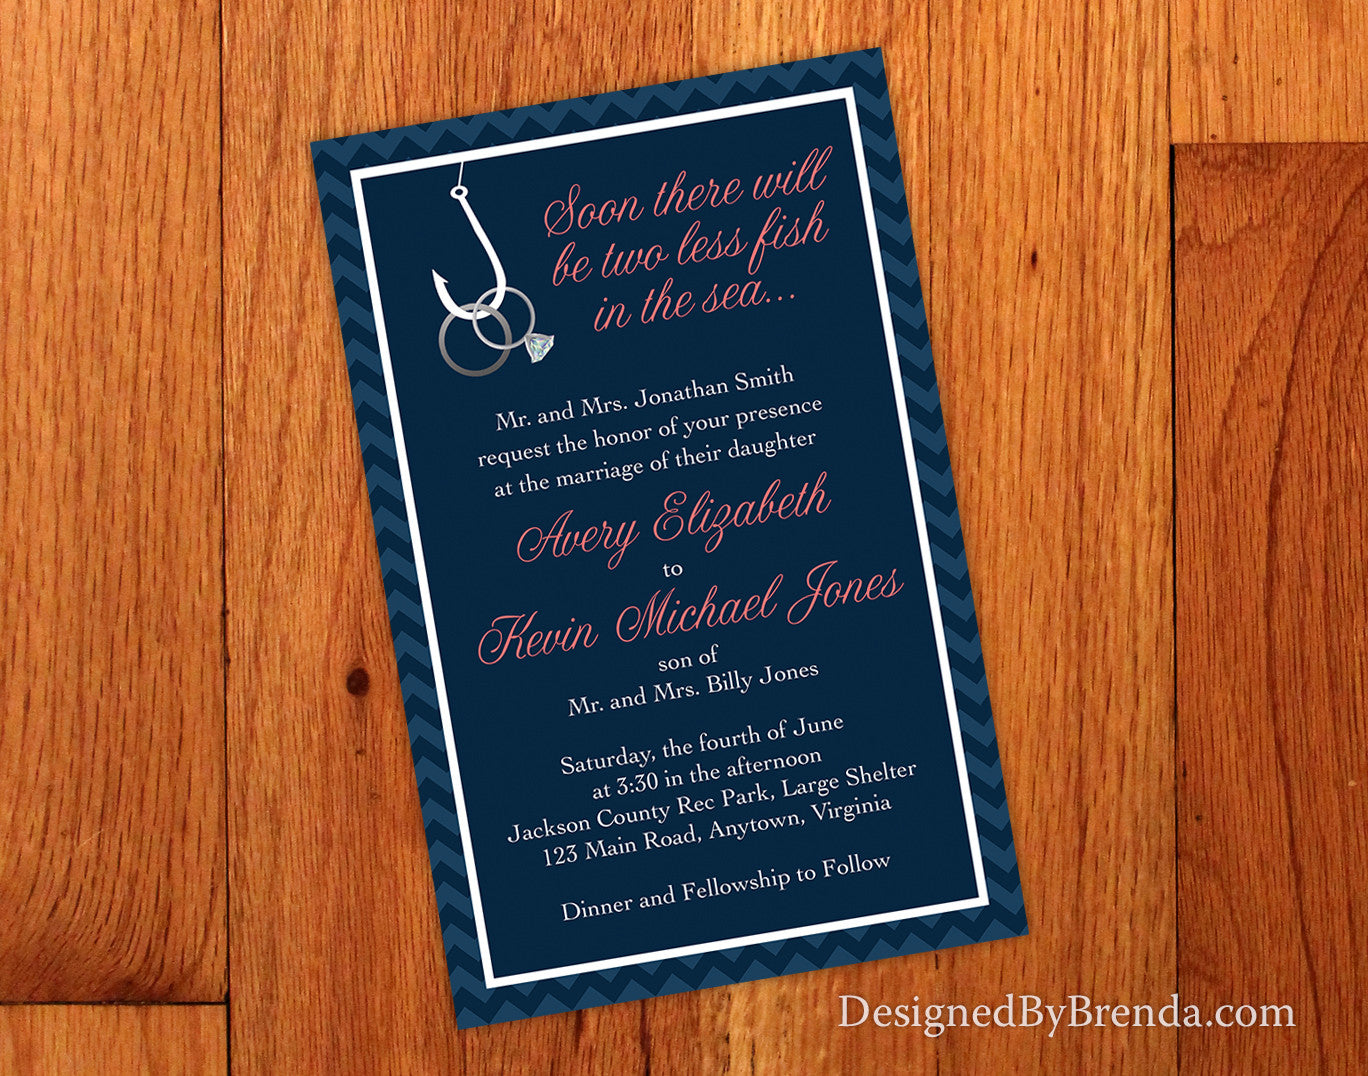 two less fish in the sea wedding invitation with rings on hook navy and coral fish hook wedding ring Two Less Fish in the Sea Wedding Invitation with Rings on Hook Navy and Coral